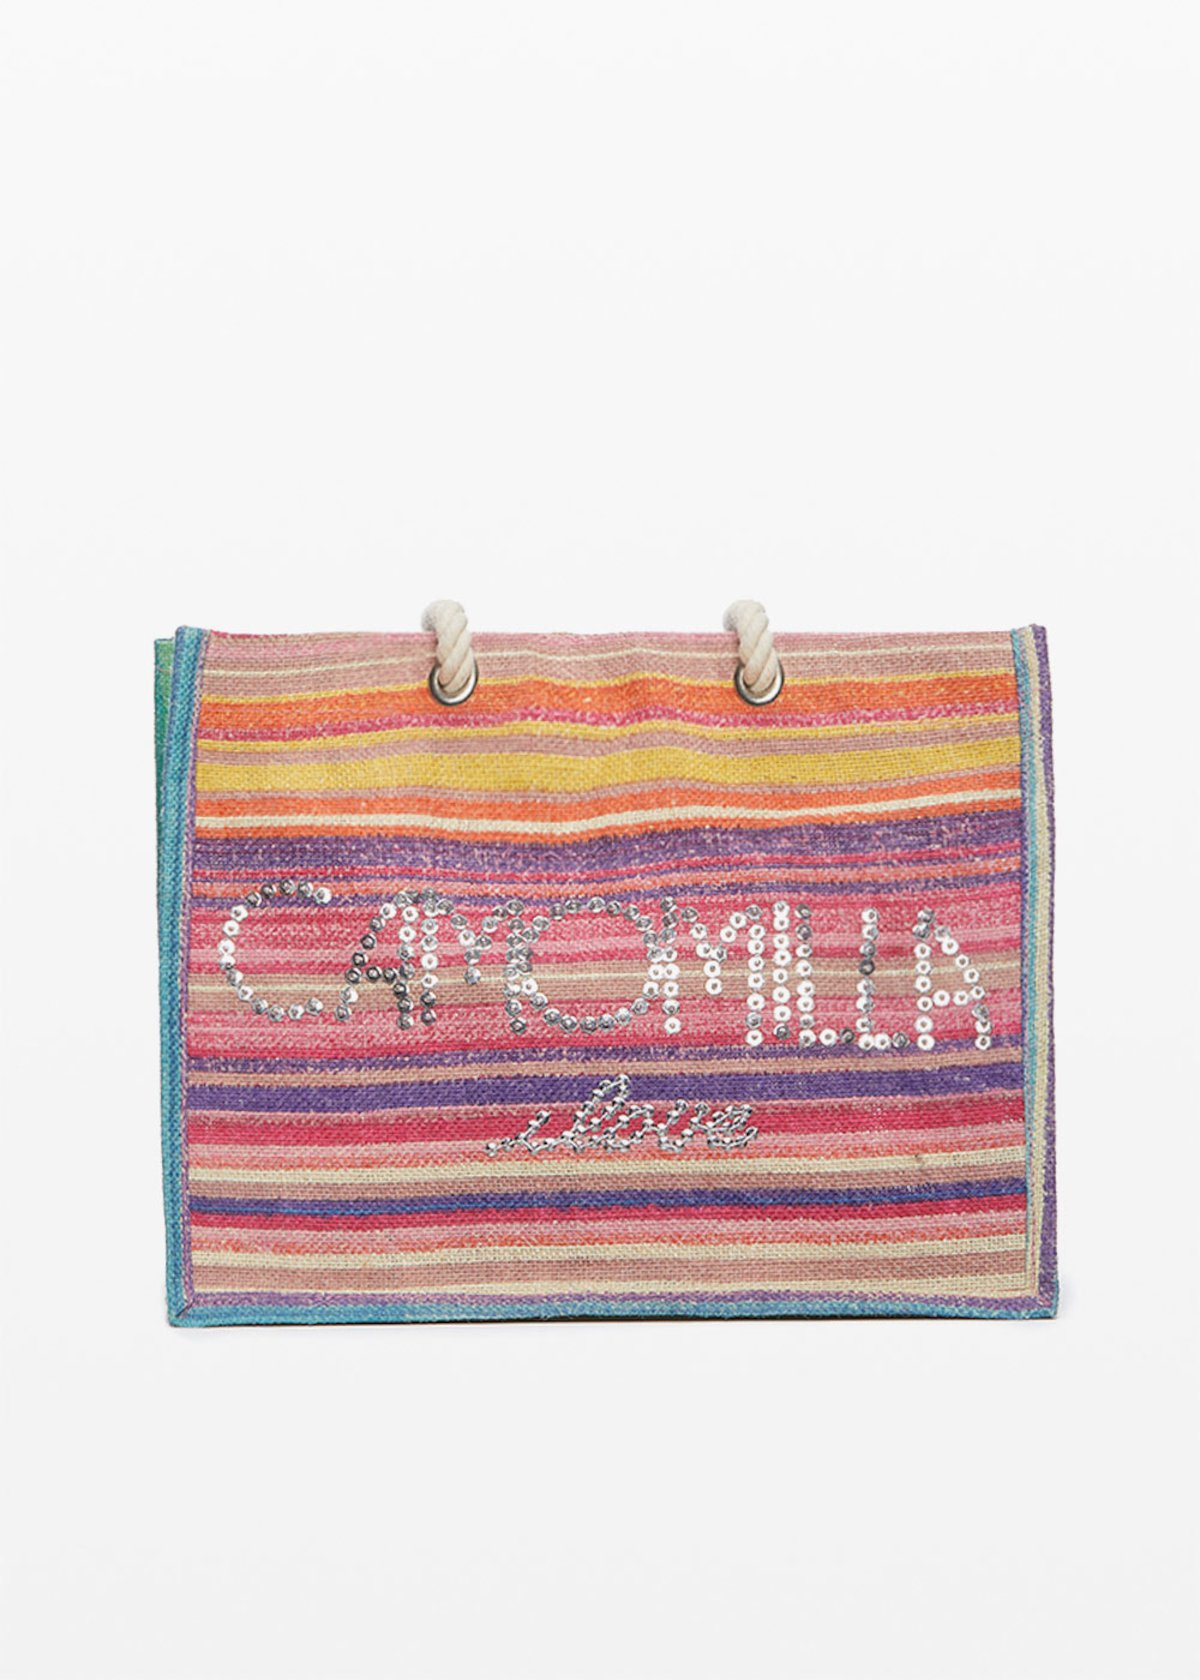 Blondy stripes print jute bag with Camomilla ilove logo in sequins - Hibiscus / Plant Stripes - Woman - Category image